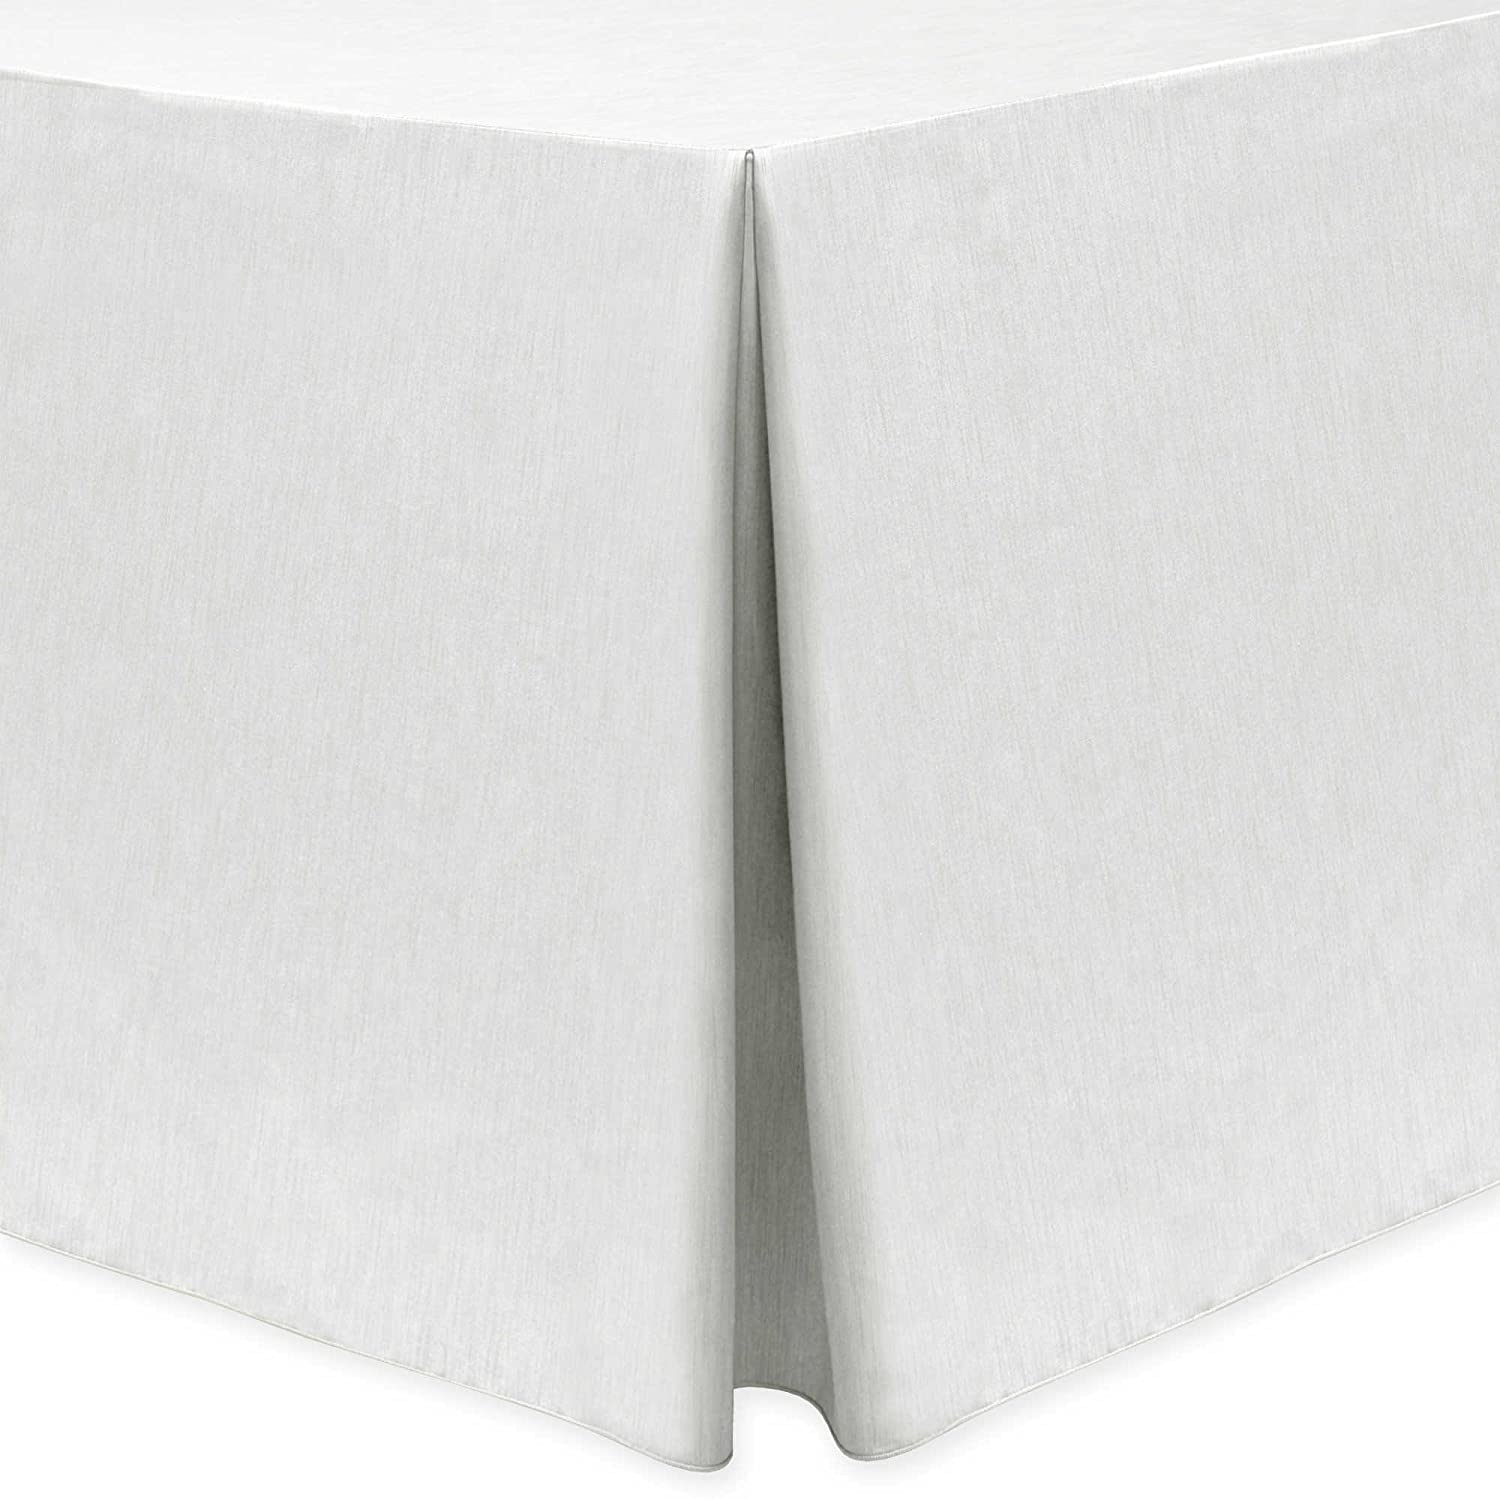 Ultimate Textile -2 Pack- Shantung - Majestic 4 ft. Fitted Tablecloth - Fits 24 x 48-Inch Rectangular Tables, White